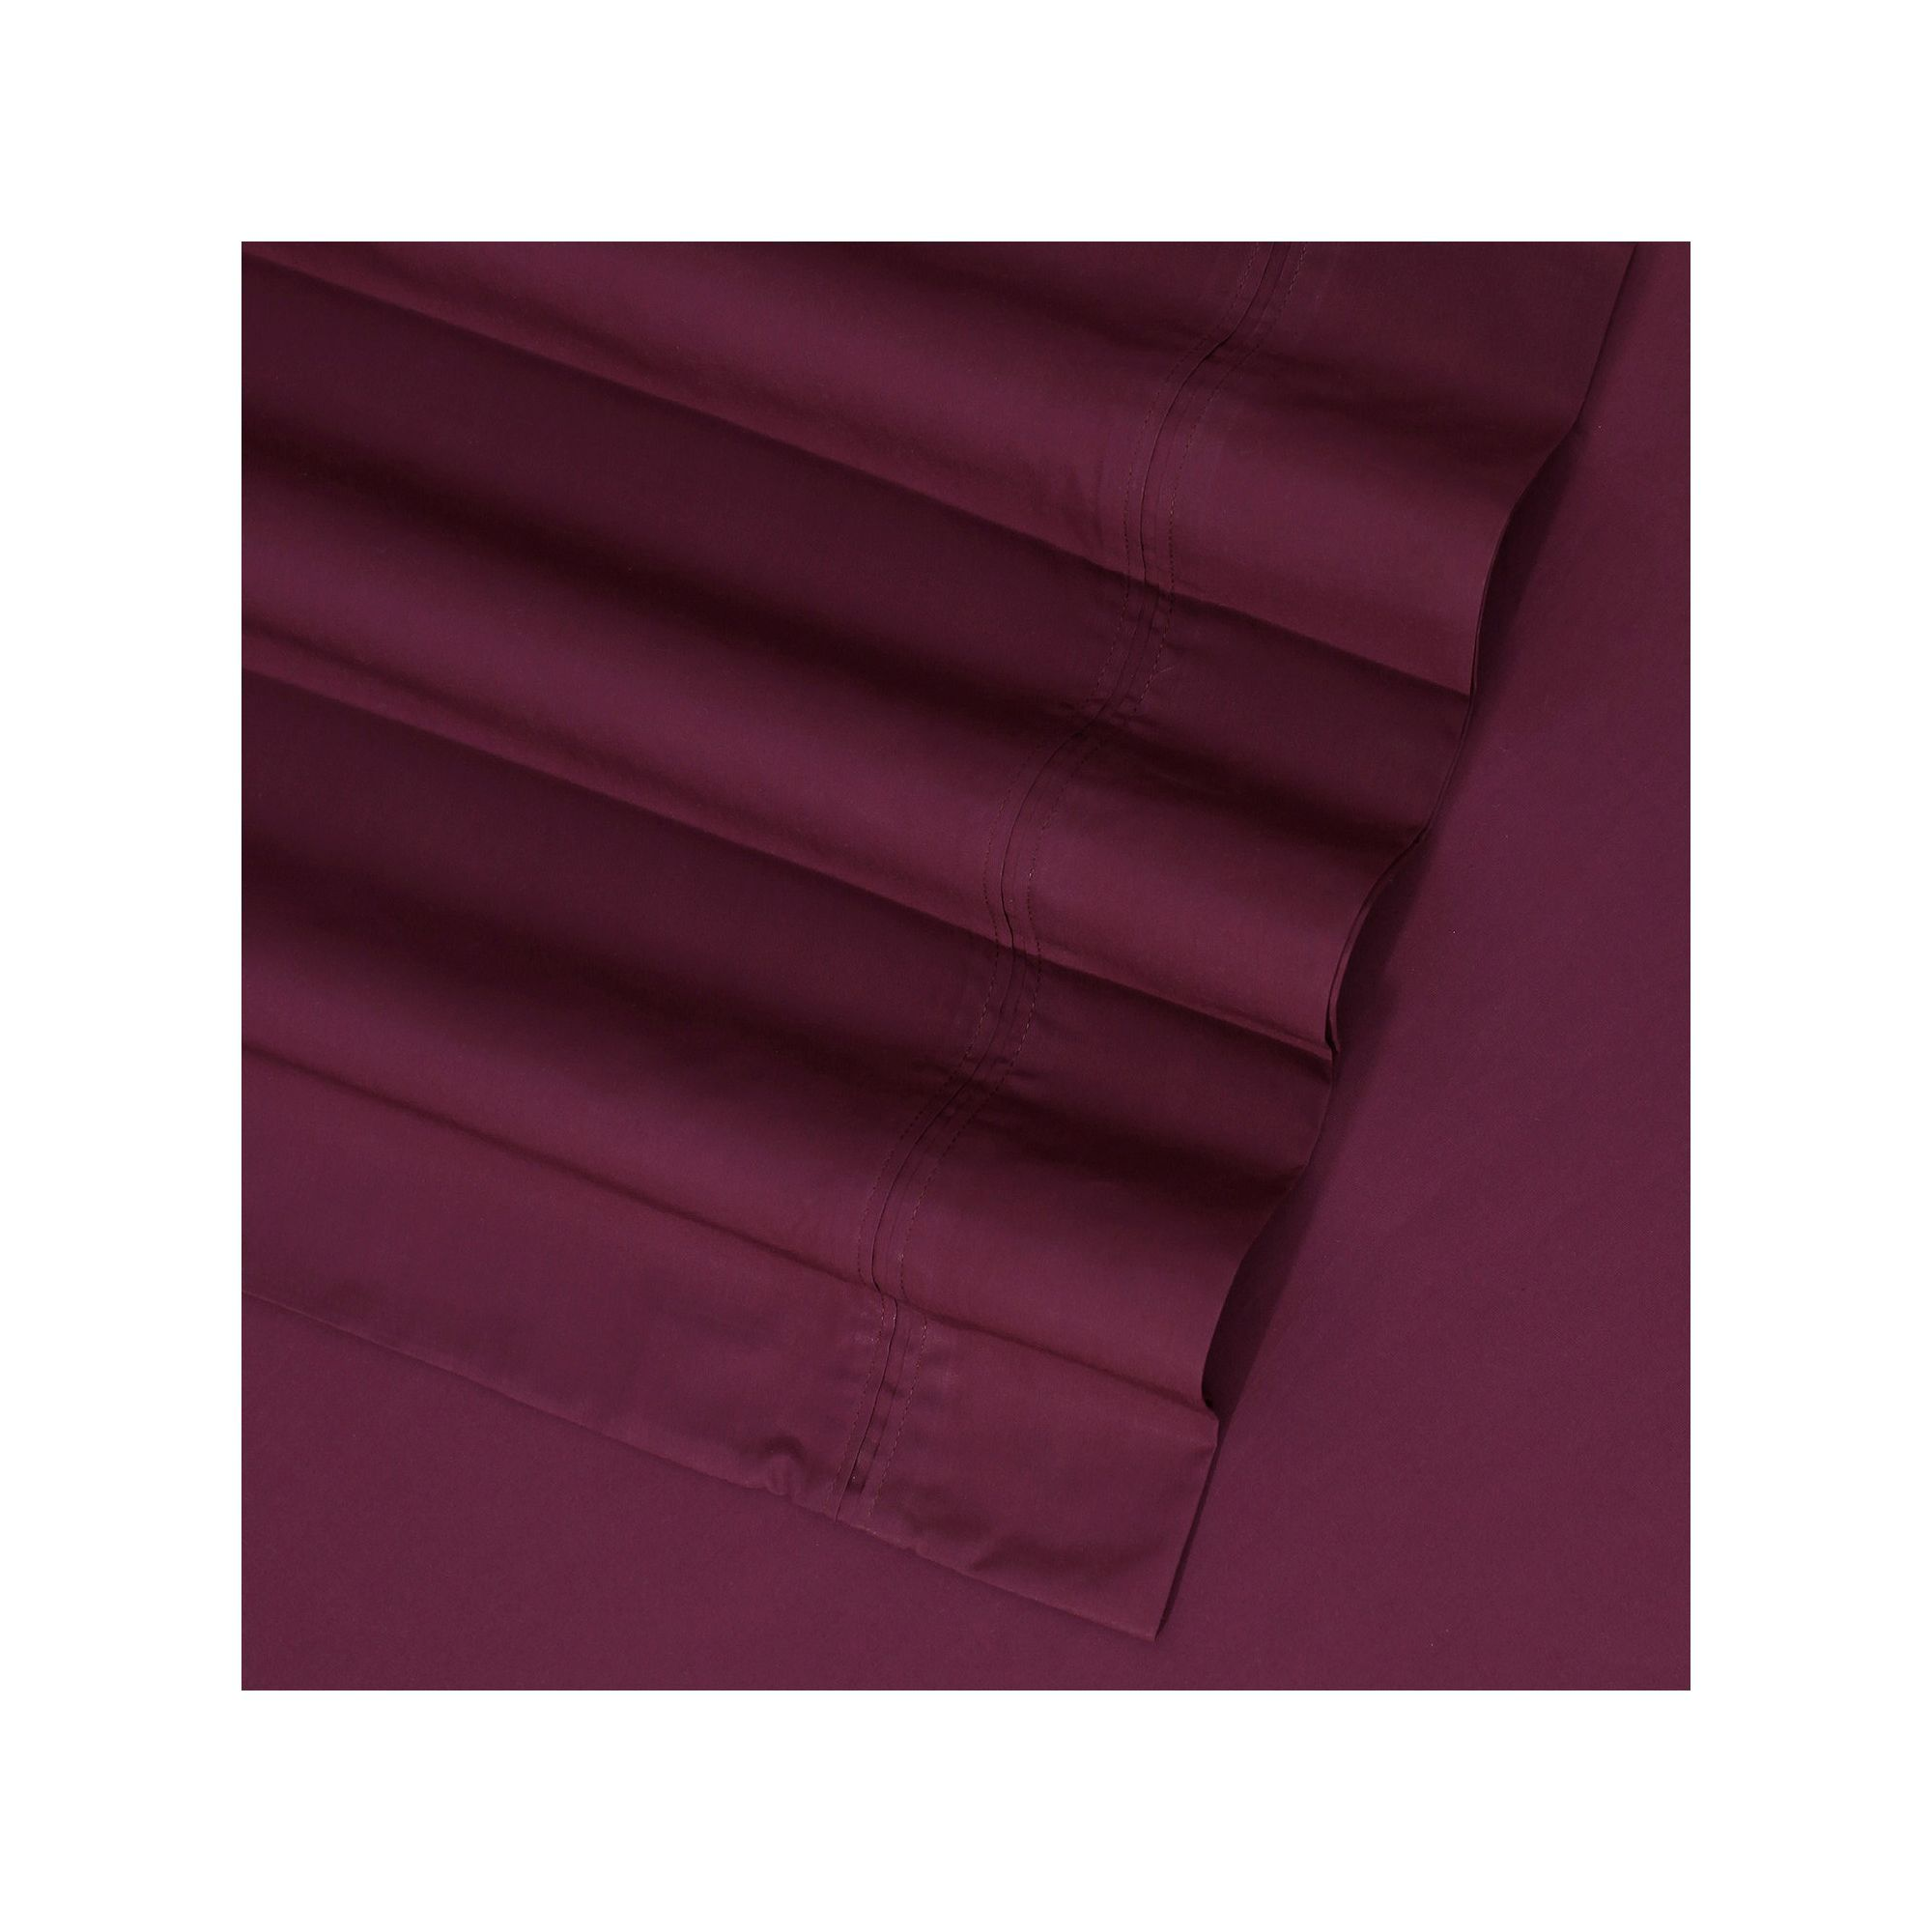 Egyptian Cotton Percale 350 Thread Count Sheet Set In 2020 Sheet Thread Count Egyptian Cotton Sheet Sets,Best Color Paint For Bedroom 2020